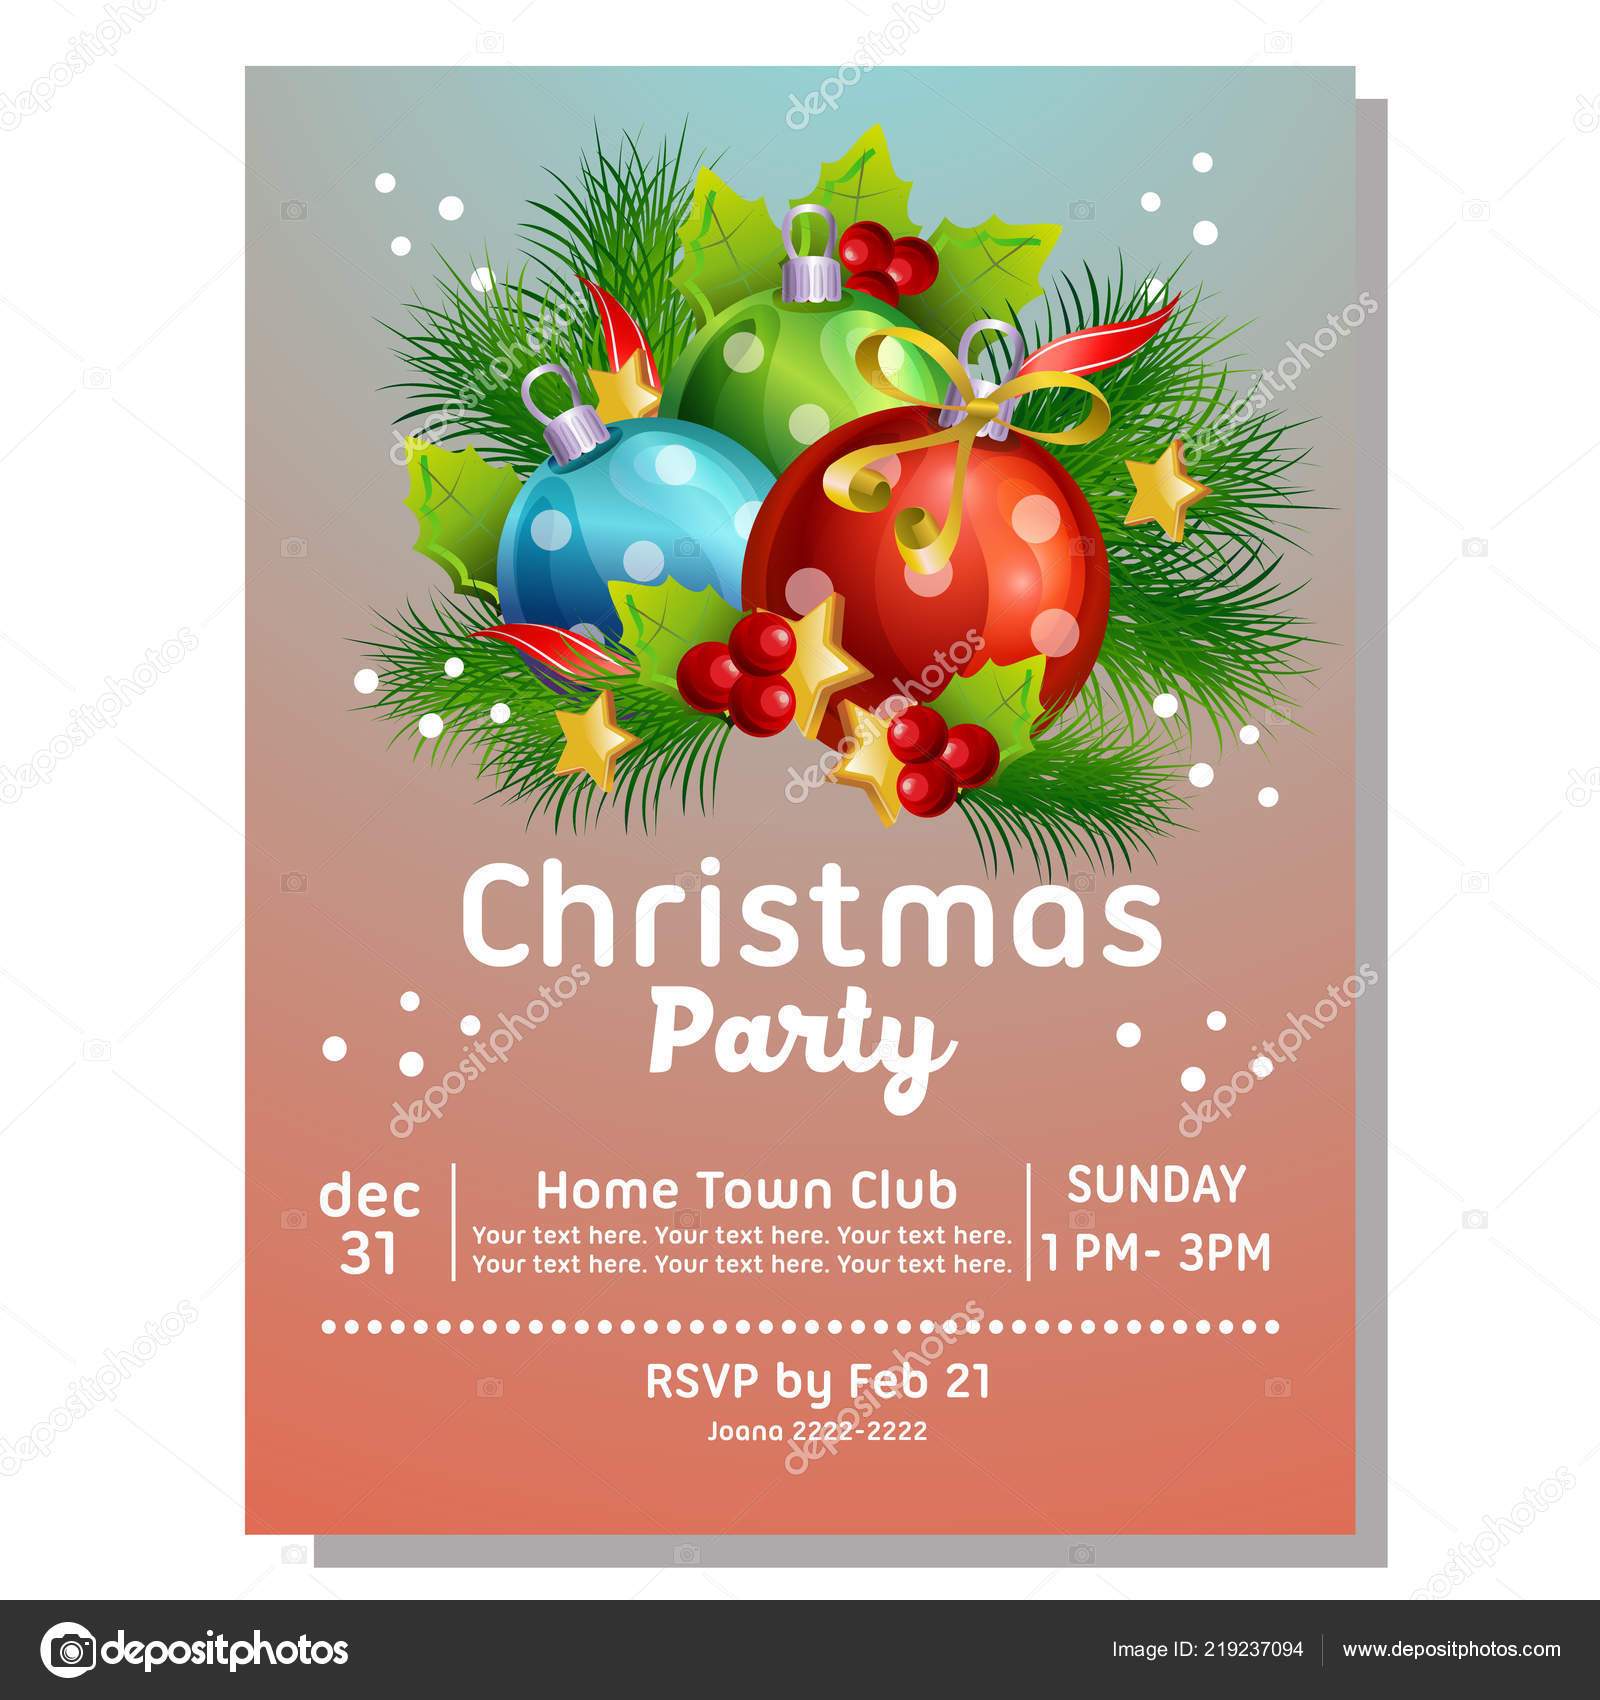 Christmas Party Invitation Card Light Ball — Stock Vector © oncombuntung  #219237094